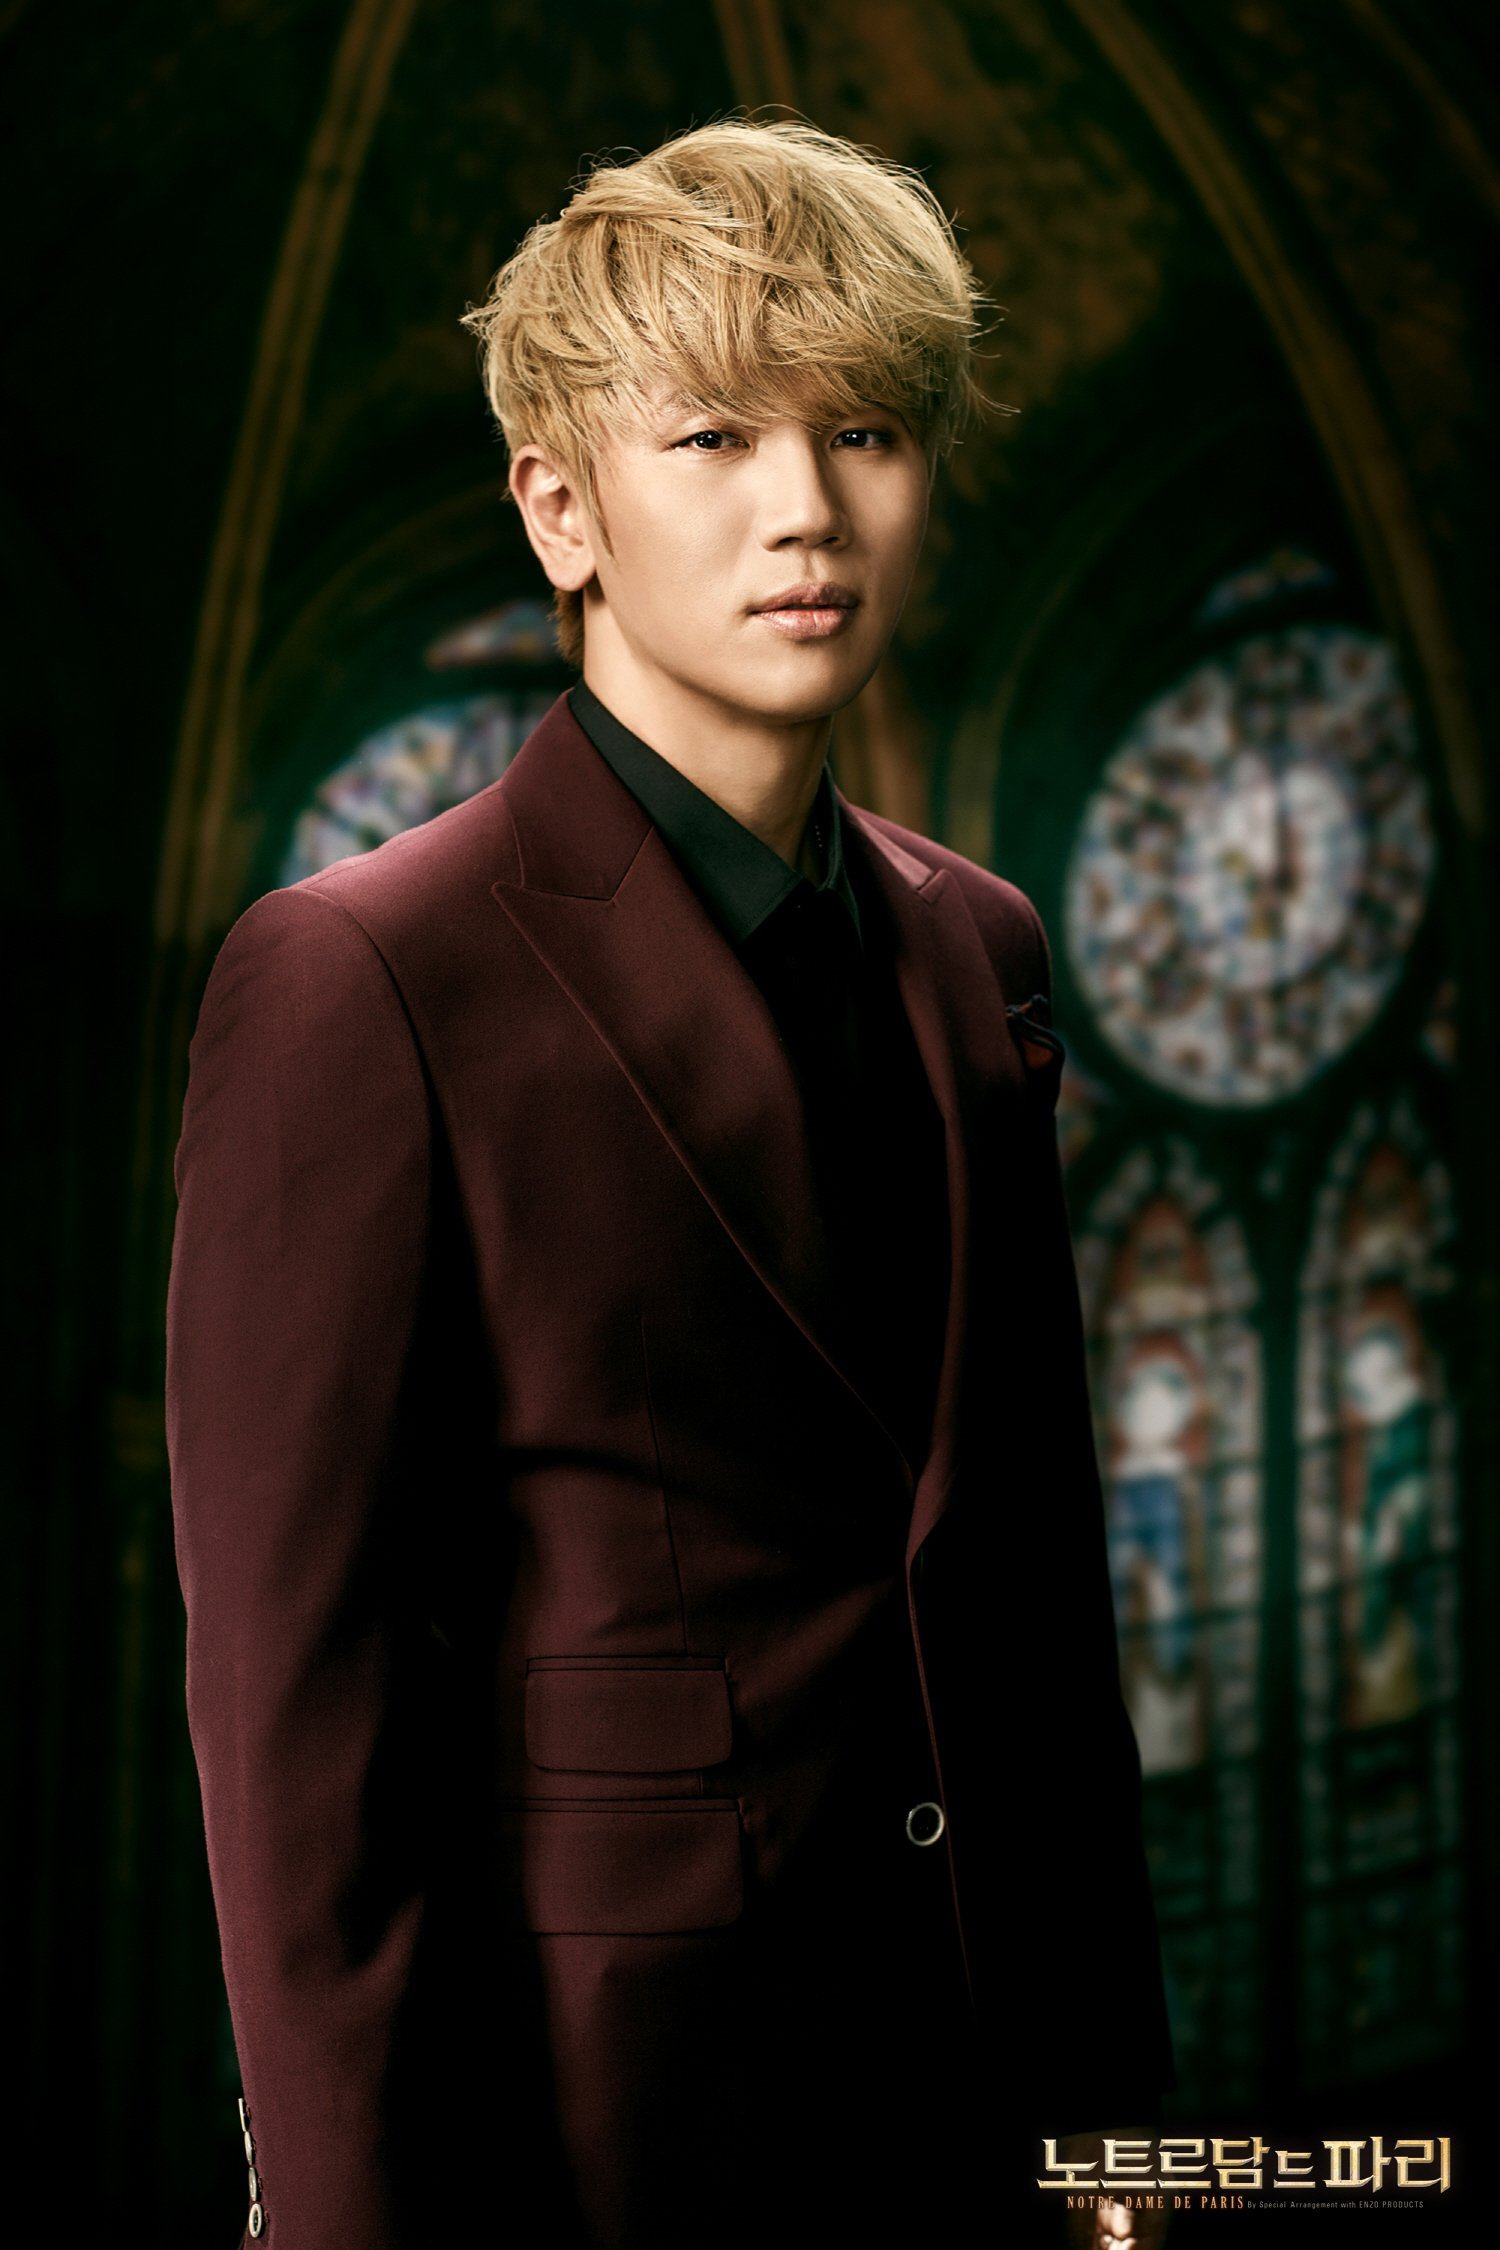 k.will notre dame